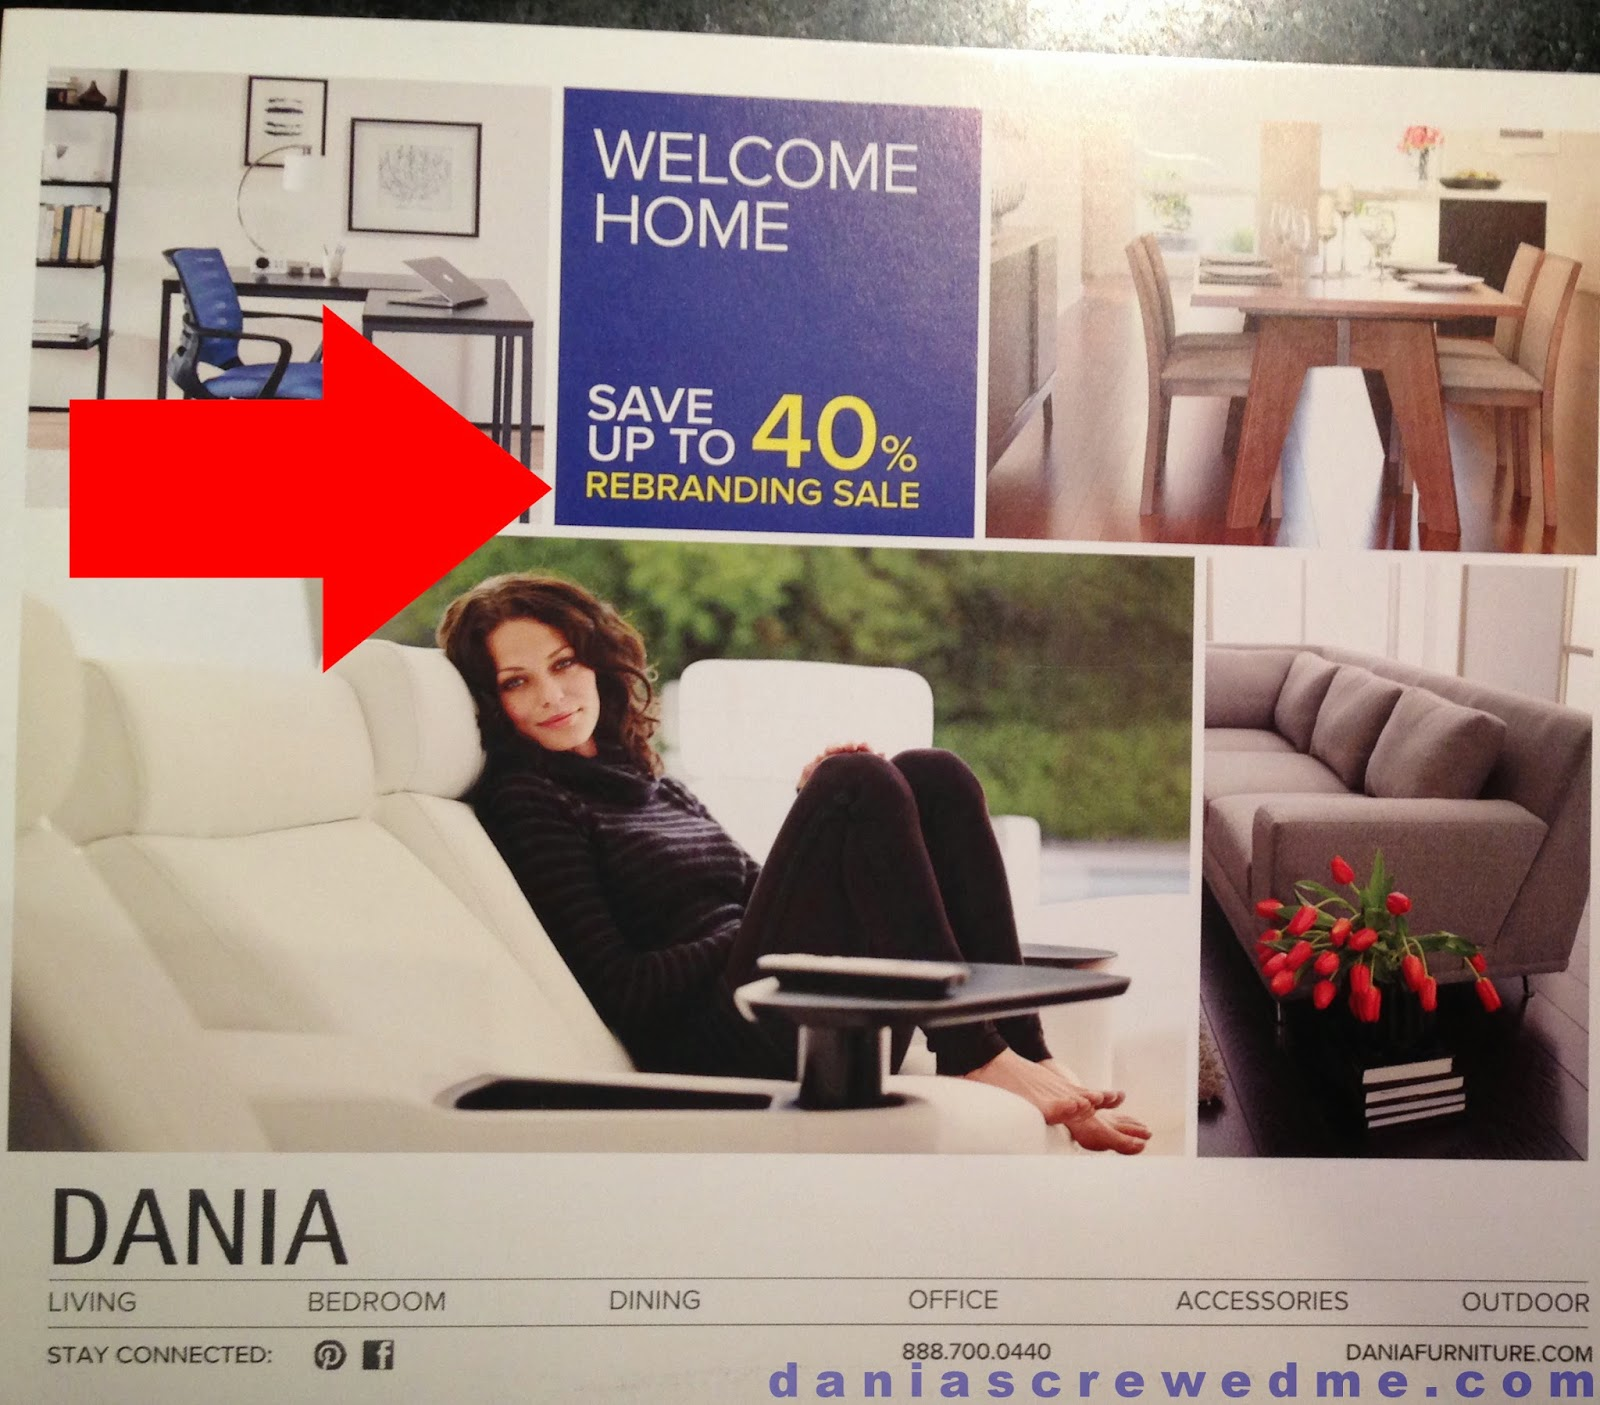 dania furniture plans to telegraph its rebranding sale, in addition to direct mail